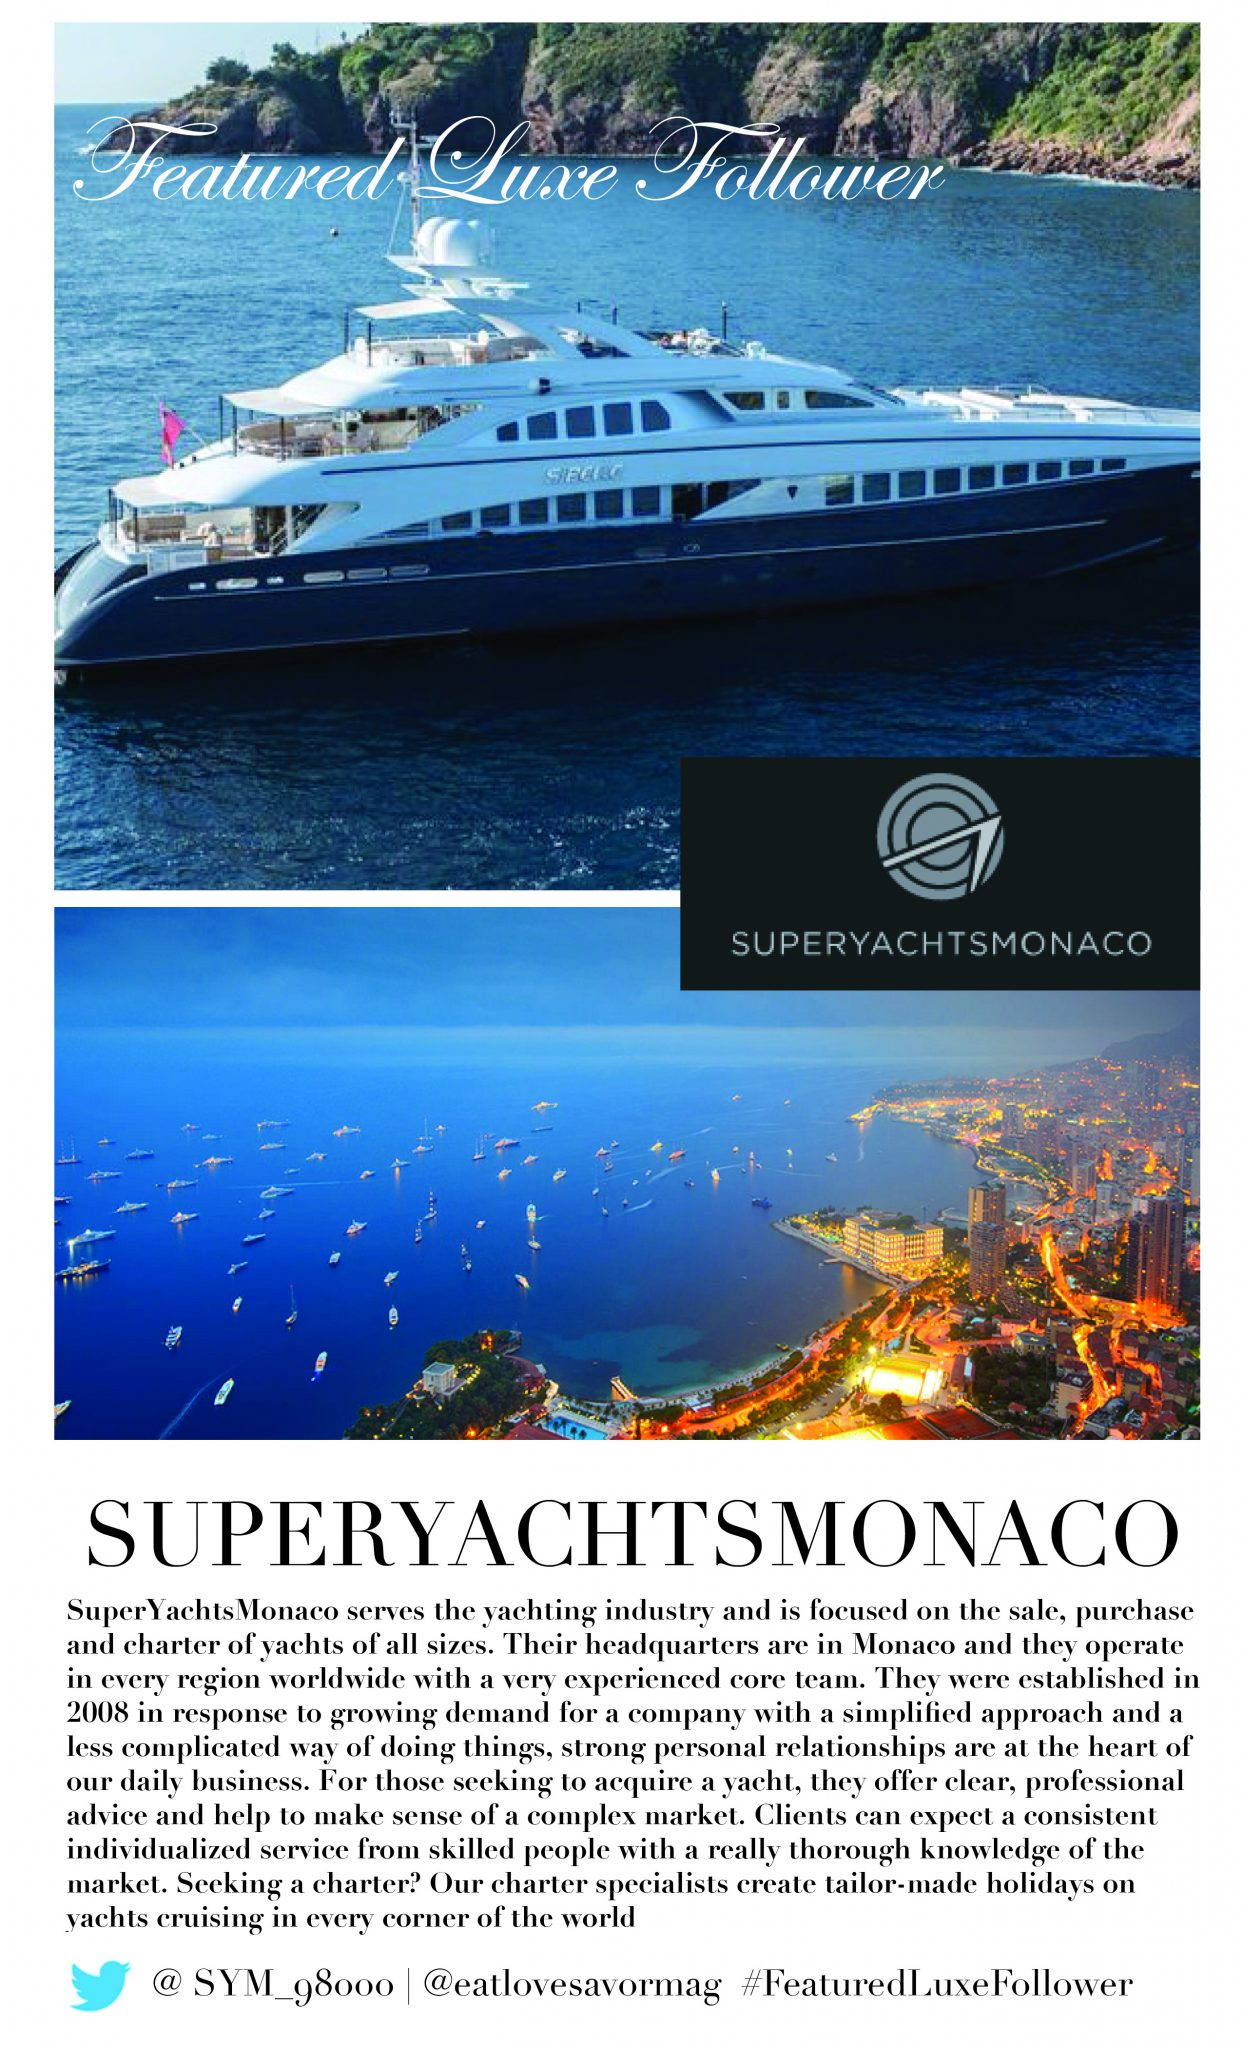 featured luxe follower jan 13 superyachtsmonaco #FeaturedLuxeFollower :: SuperYachtsMonaco :: @SYM_98000 - EAT LOVE SAVOR International luxury lifestyle magazine and bookazines